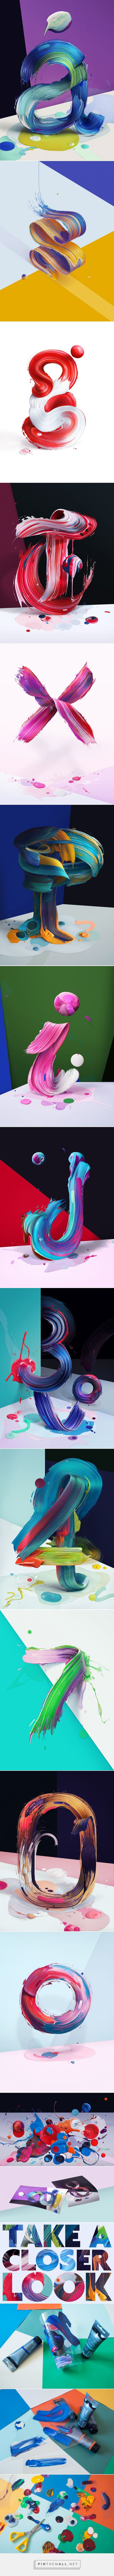 Atypical by: Pawel Nolbert on Behance